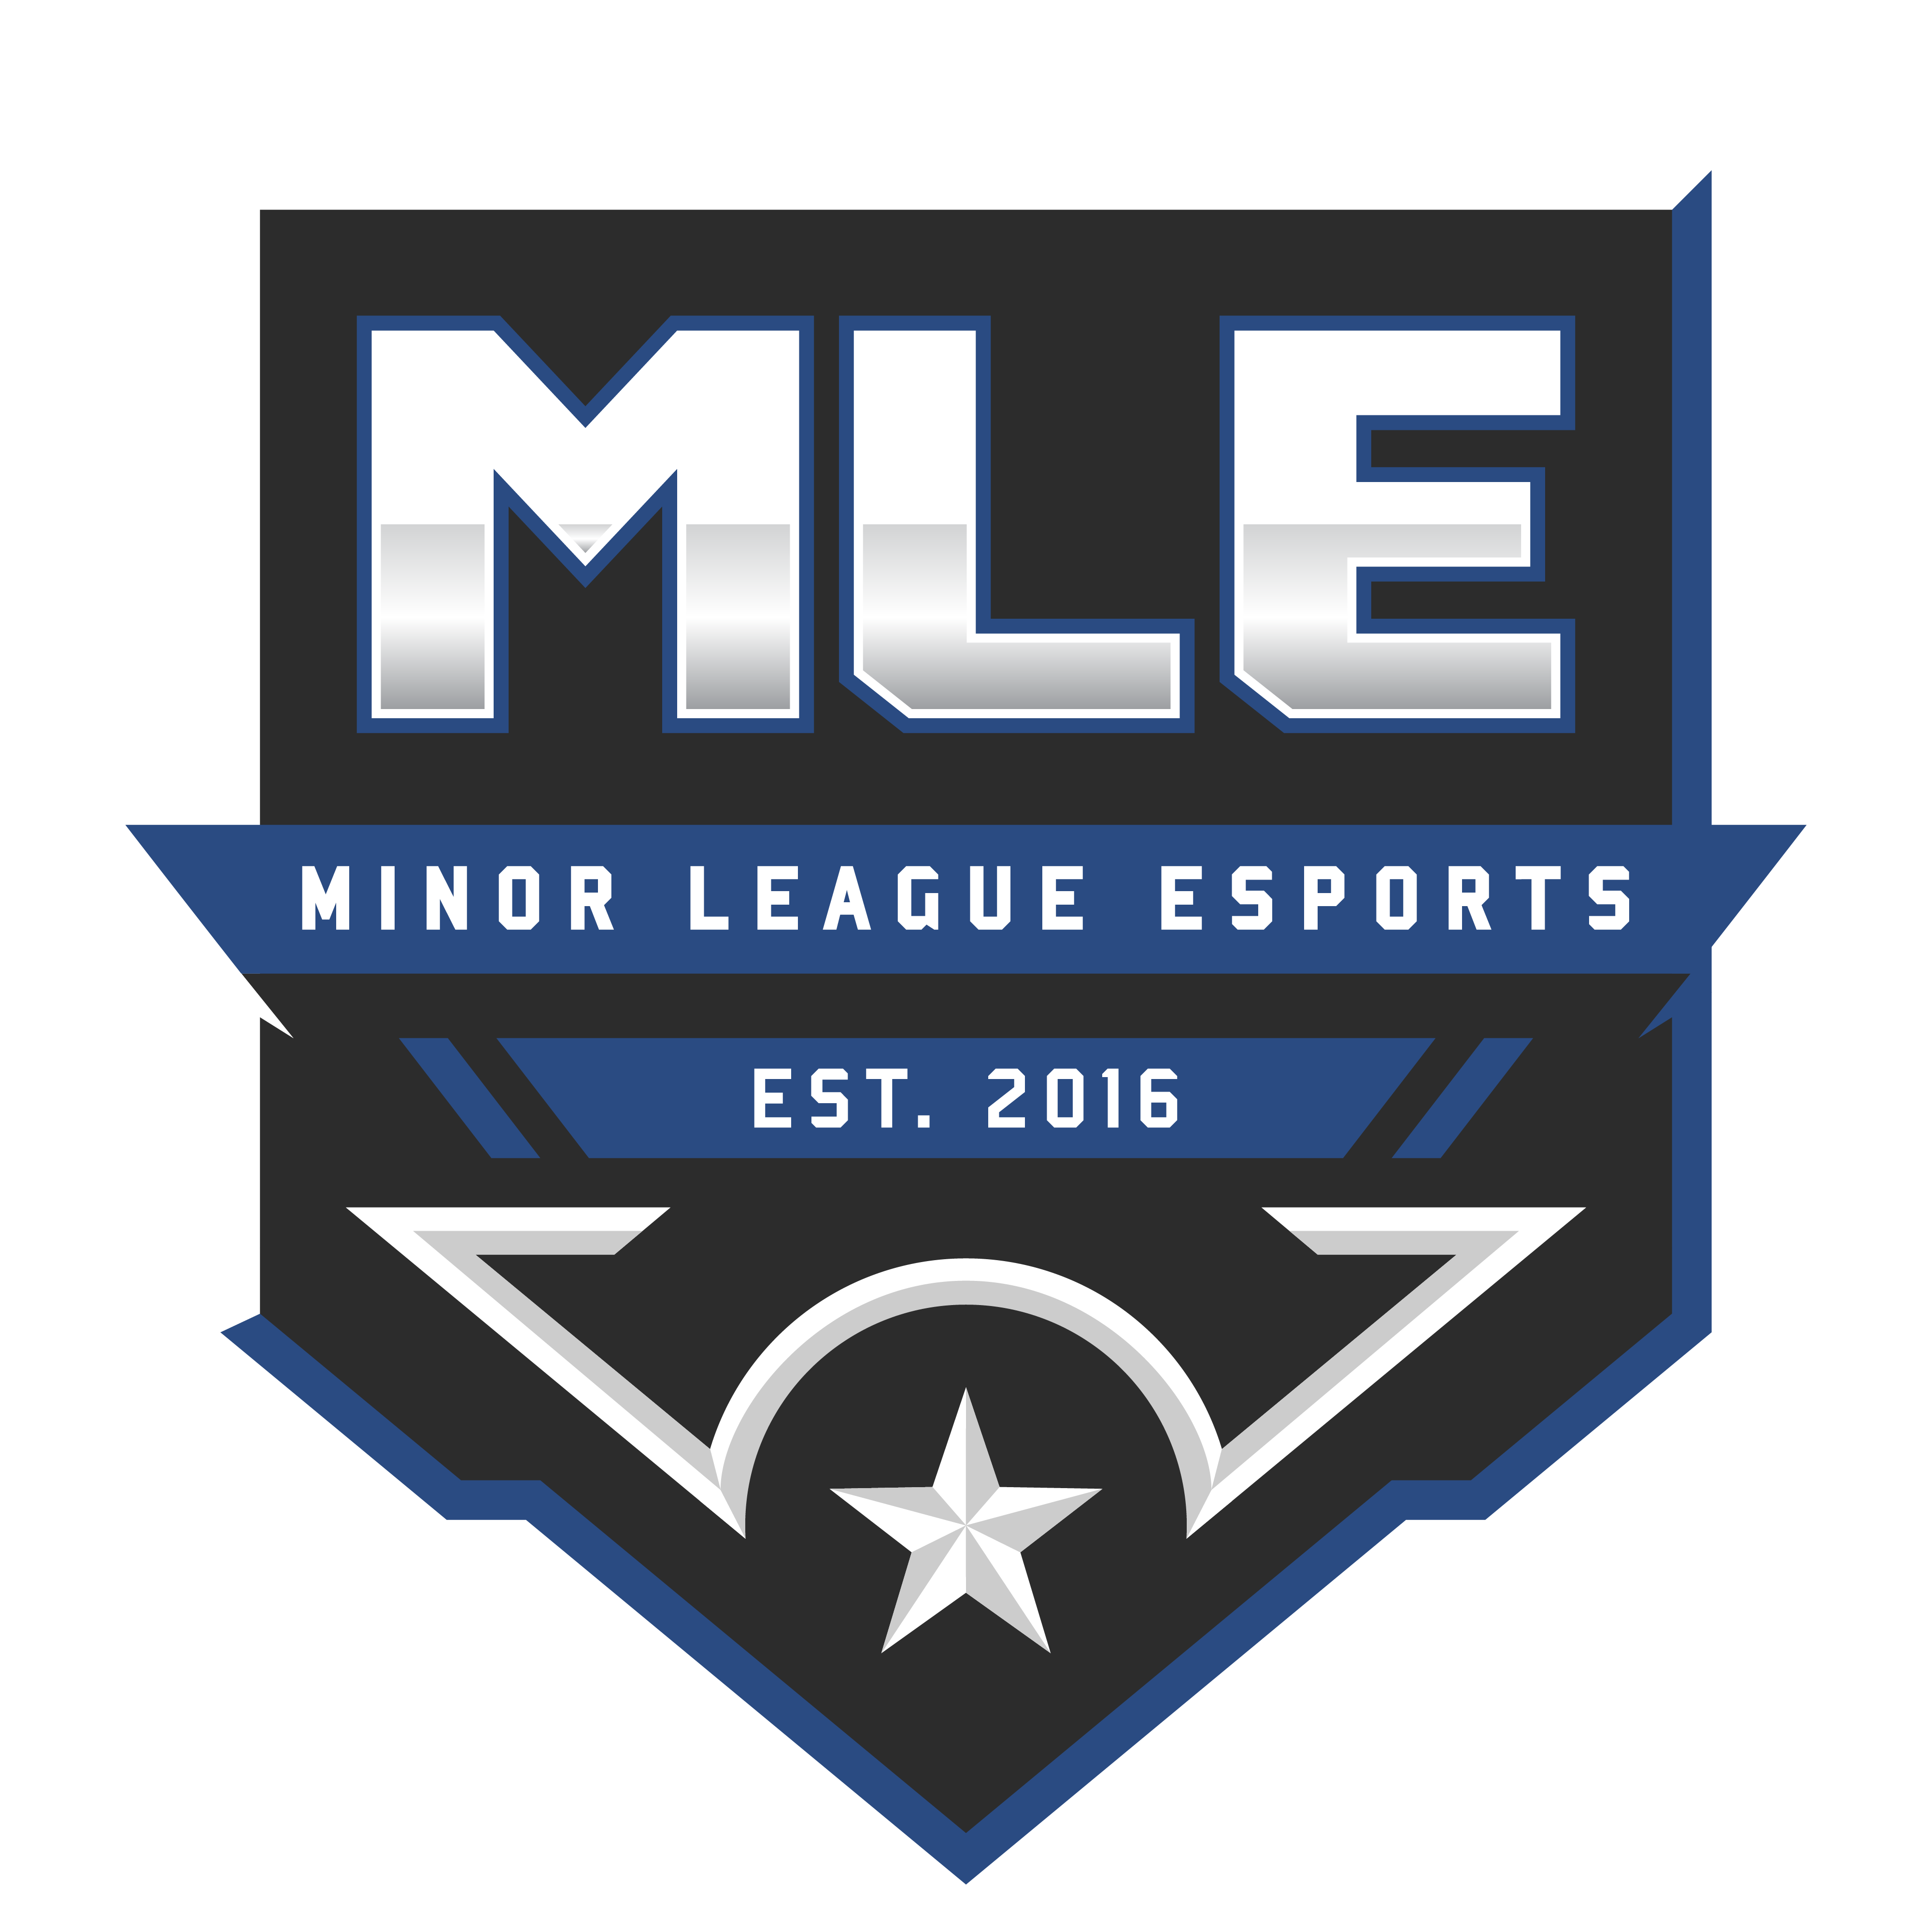 Minor League Esports Logo